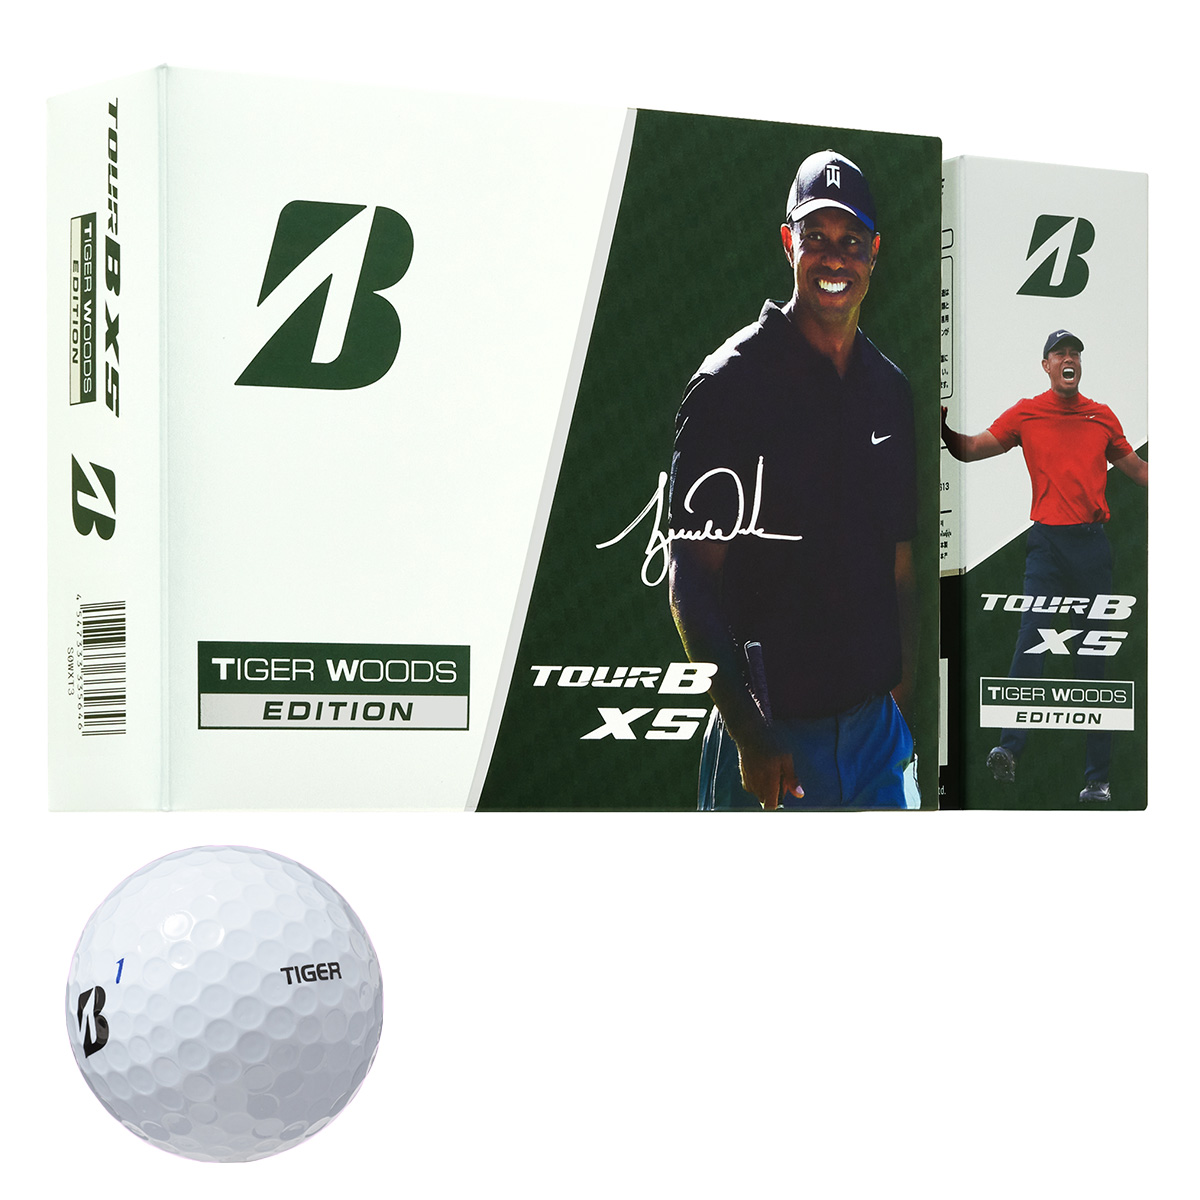 TOUR B XS Tiger Woods Edition ボール